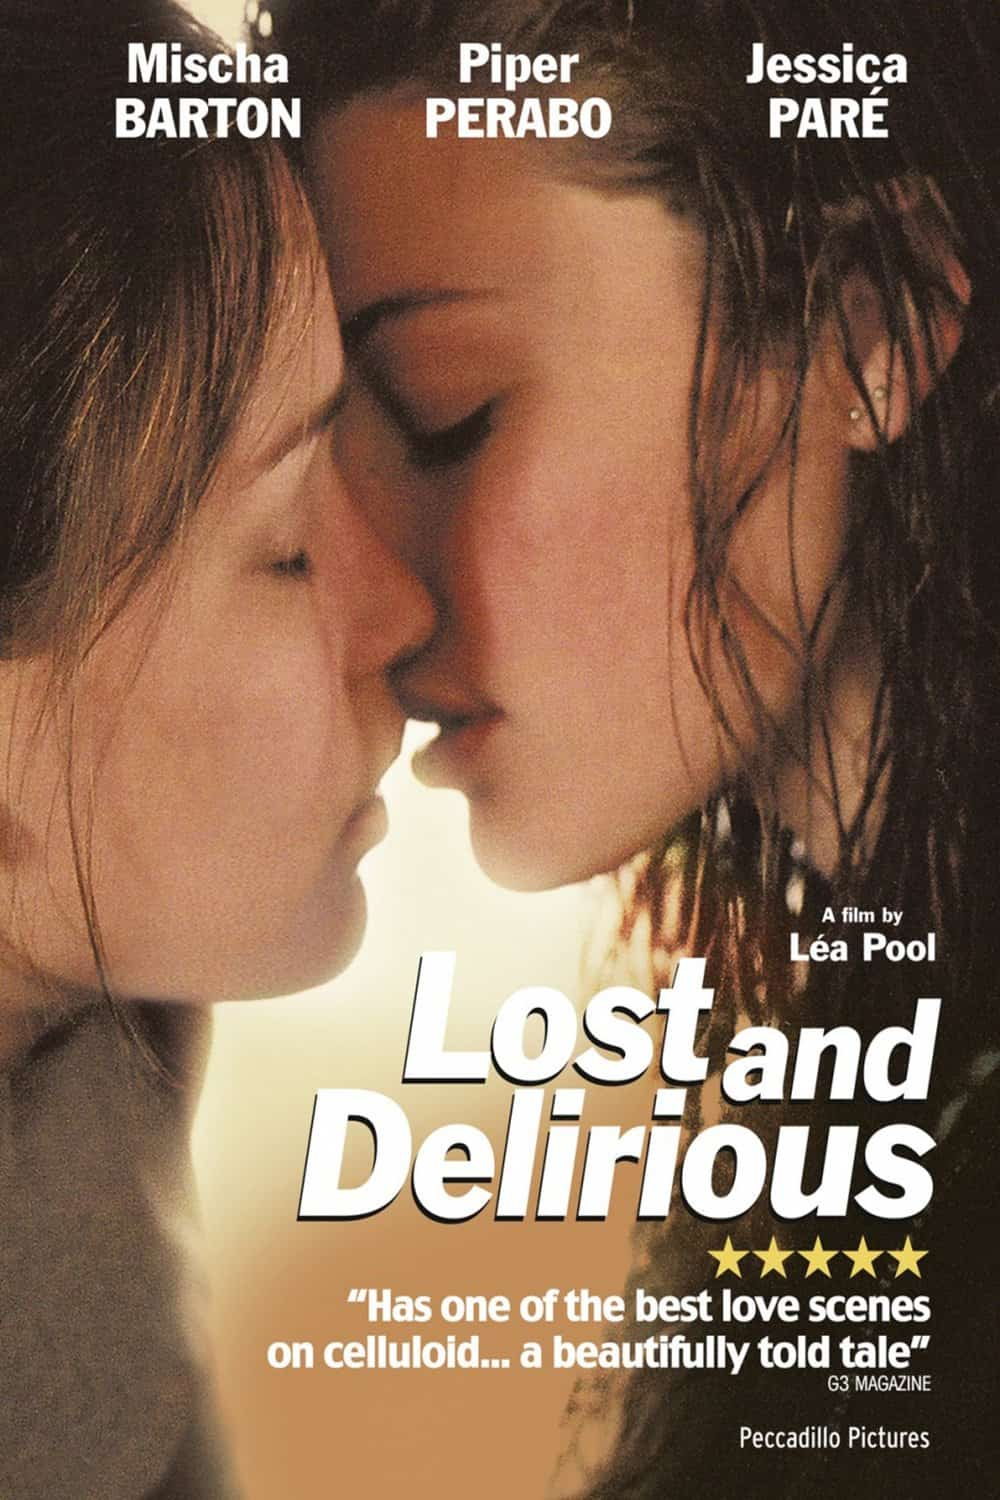 Lost and Delirious, 2001